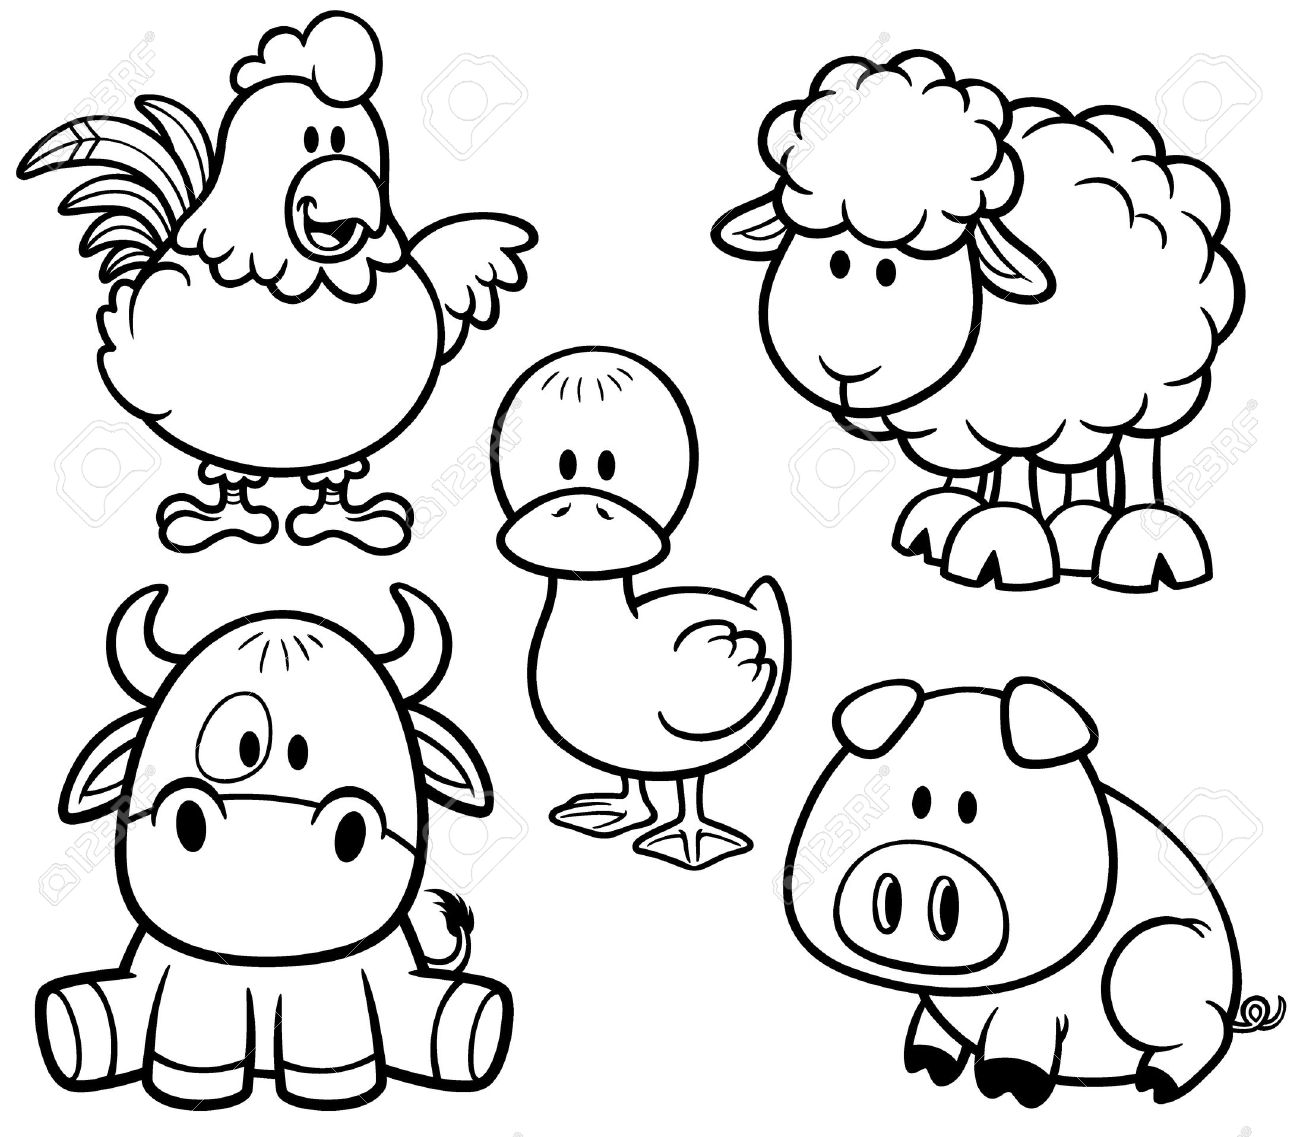 coloring pages cute animals cute baby animal coloring pages dragoart cute animal cute animals pages coloring